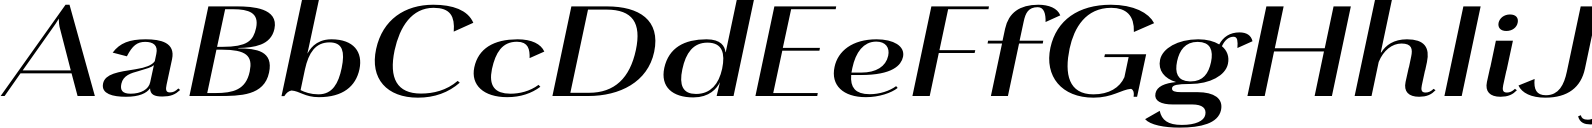 Grenale Ext Bold Italic Font